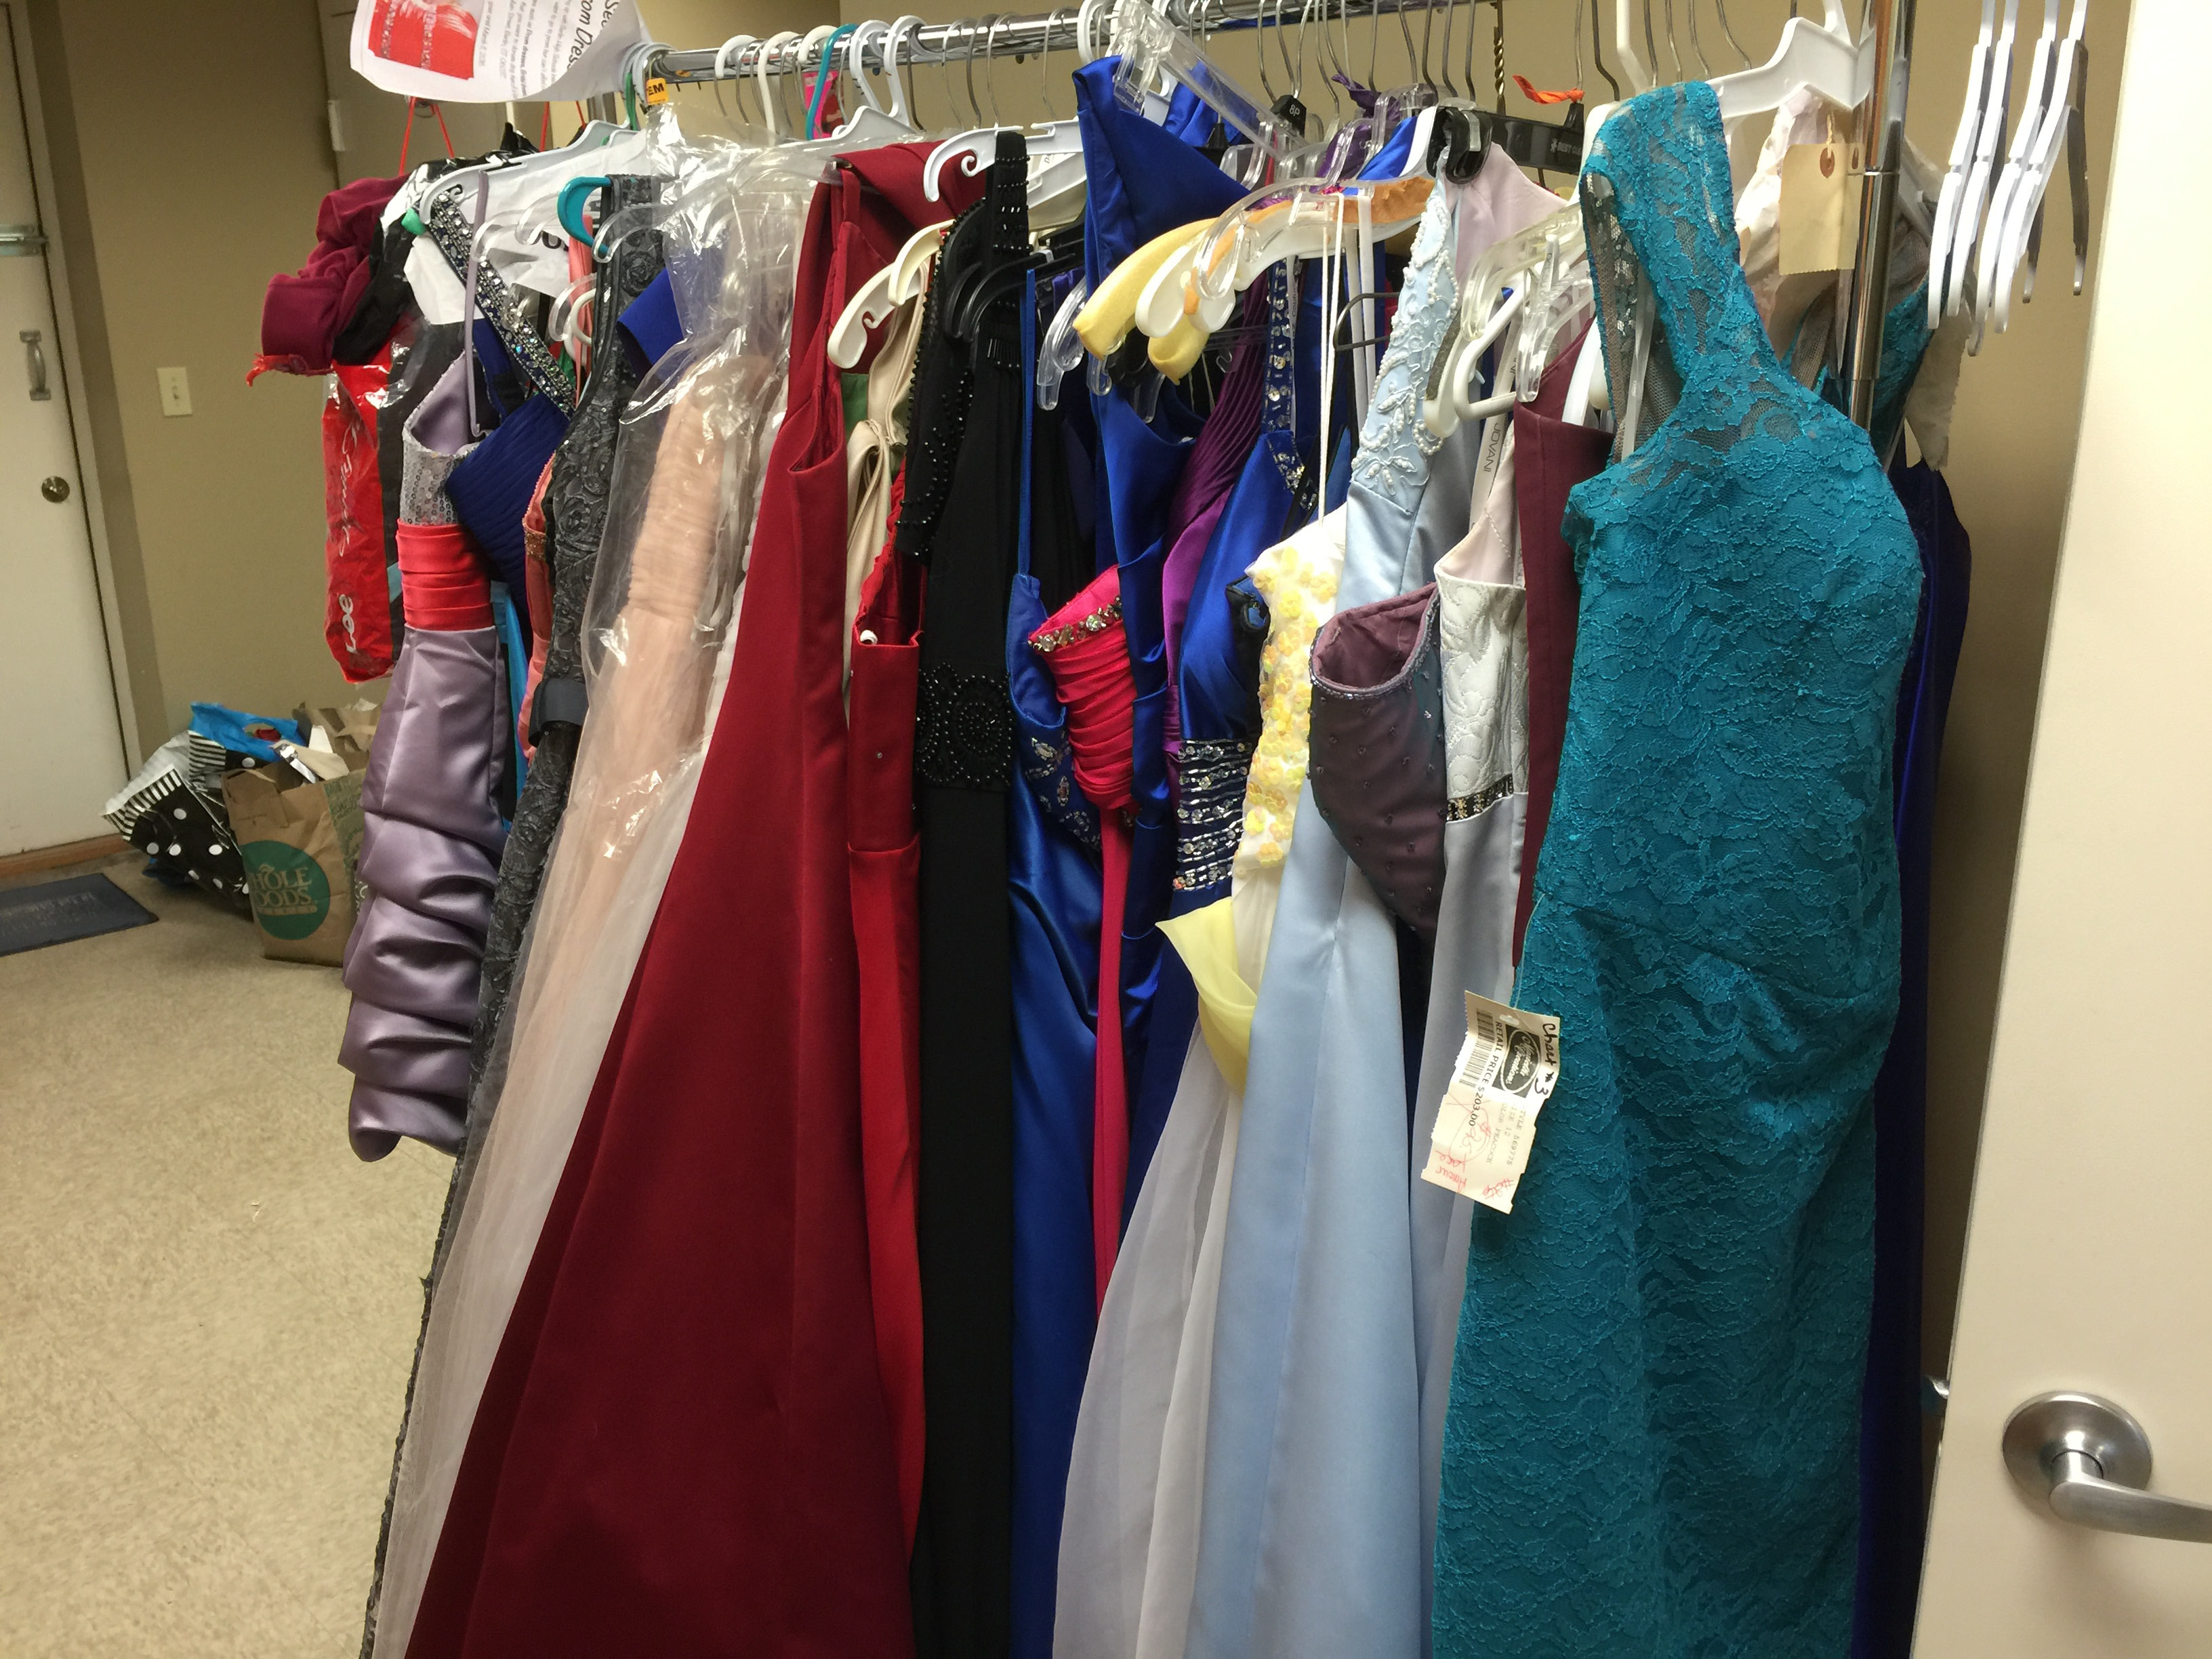 Dresses donated to Princess and the Prom as part of BHS Interact Club